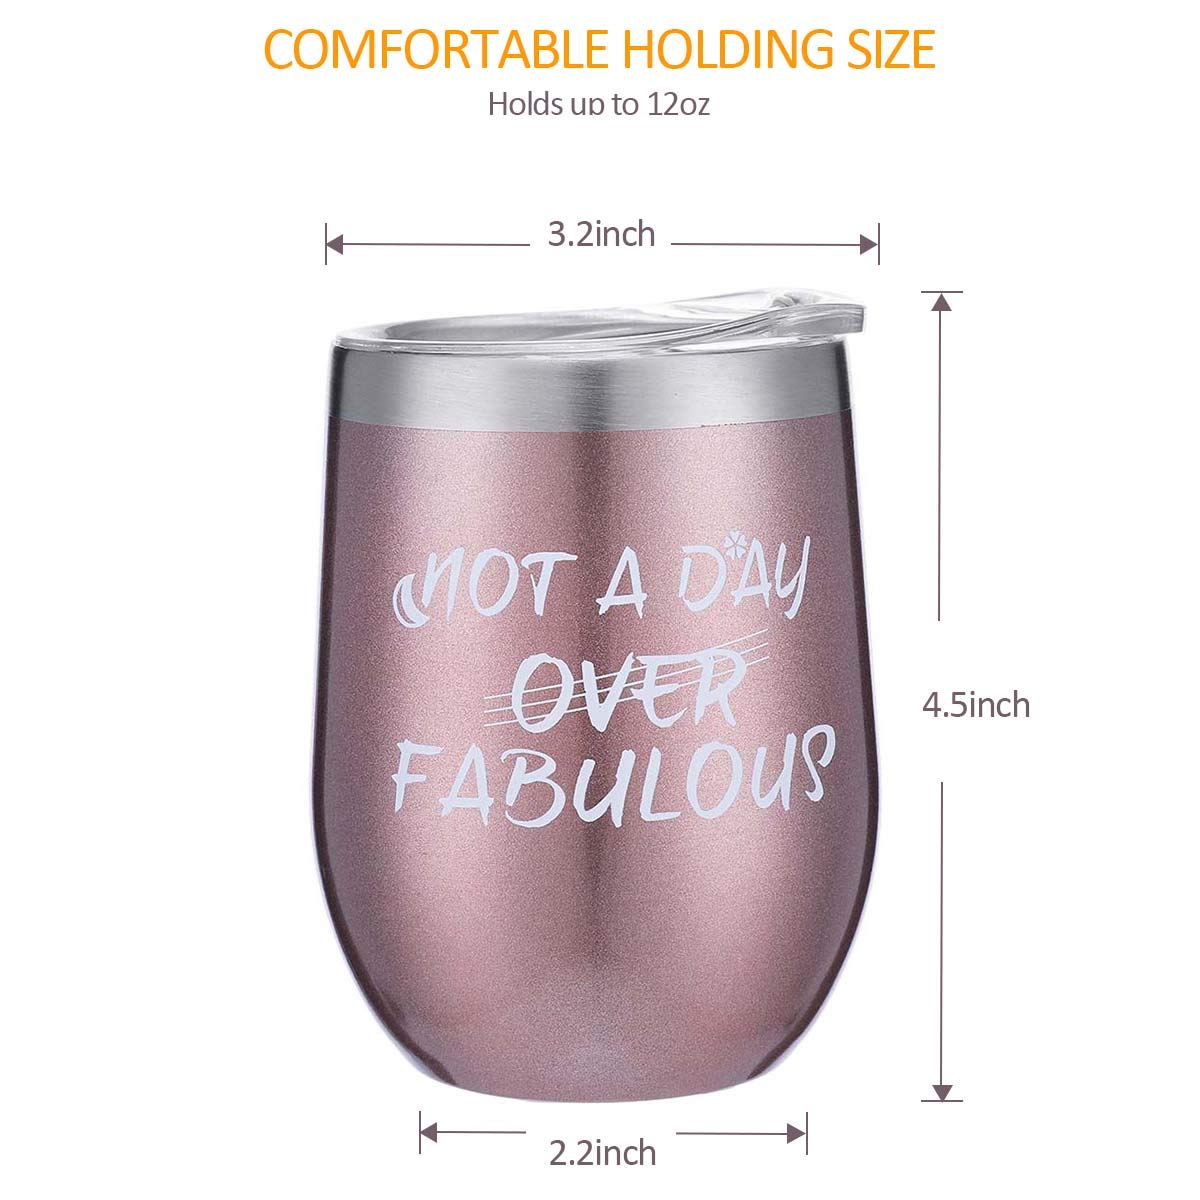 Cupcake Wine Socks Gift Set 12 oz Double Insulated Stemless Wine Glasses with Lid and Sayings Not a Day Over Fabulous Birthday Gifts for Women Friends,Blue Stainless Steel Wine Tumbler